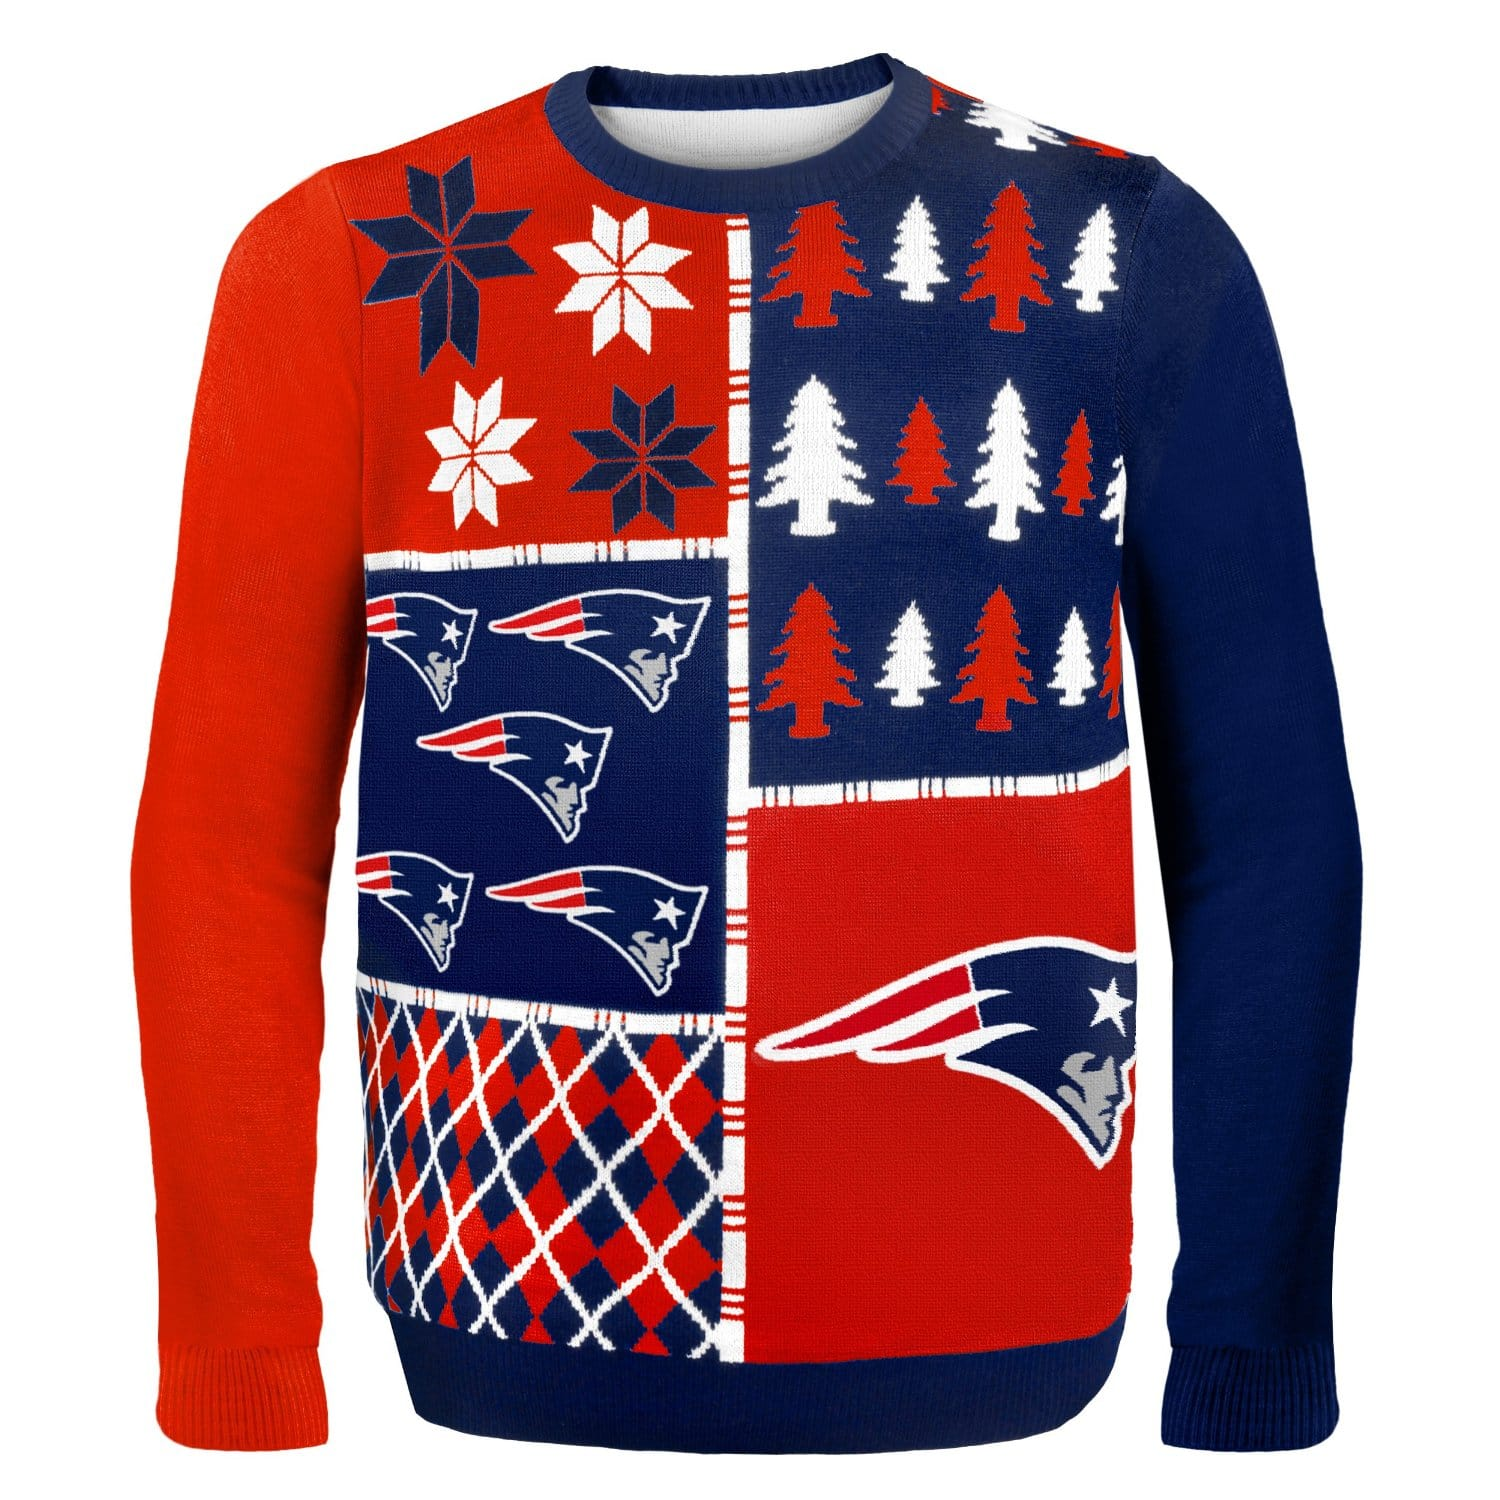 Official Licensed NFL Themed Ugly Holiday Sweaters (Various Styles)  $30